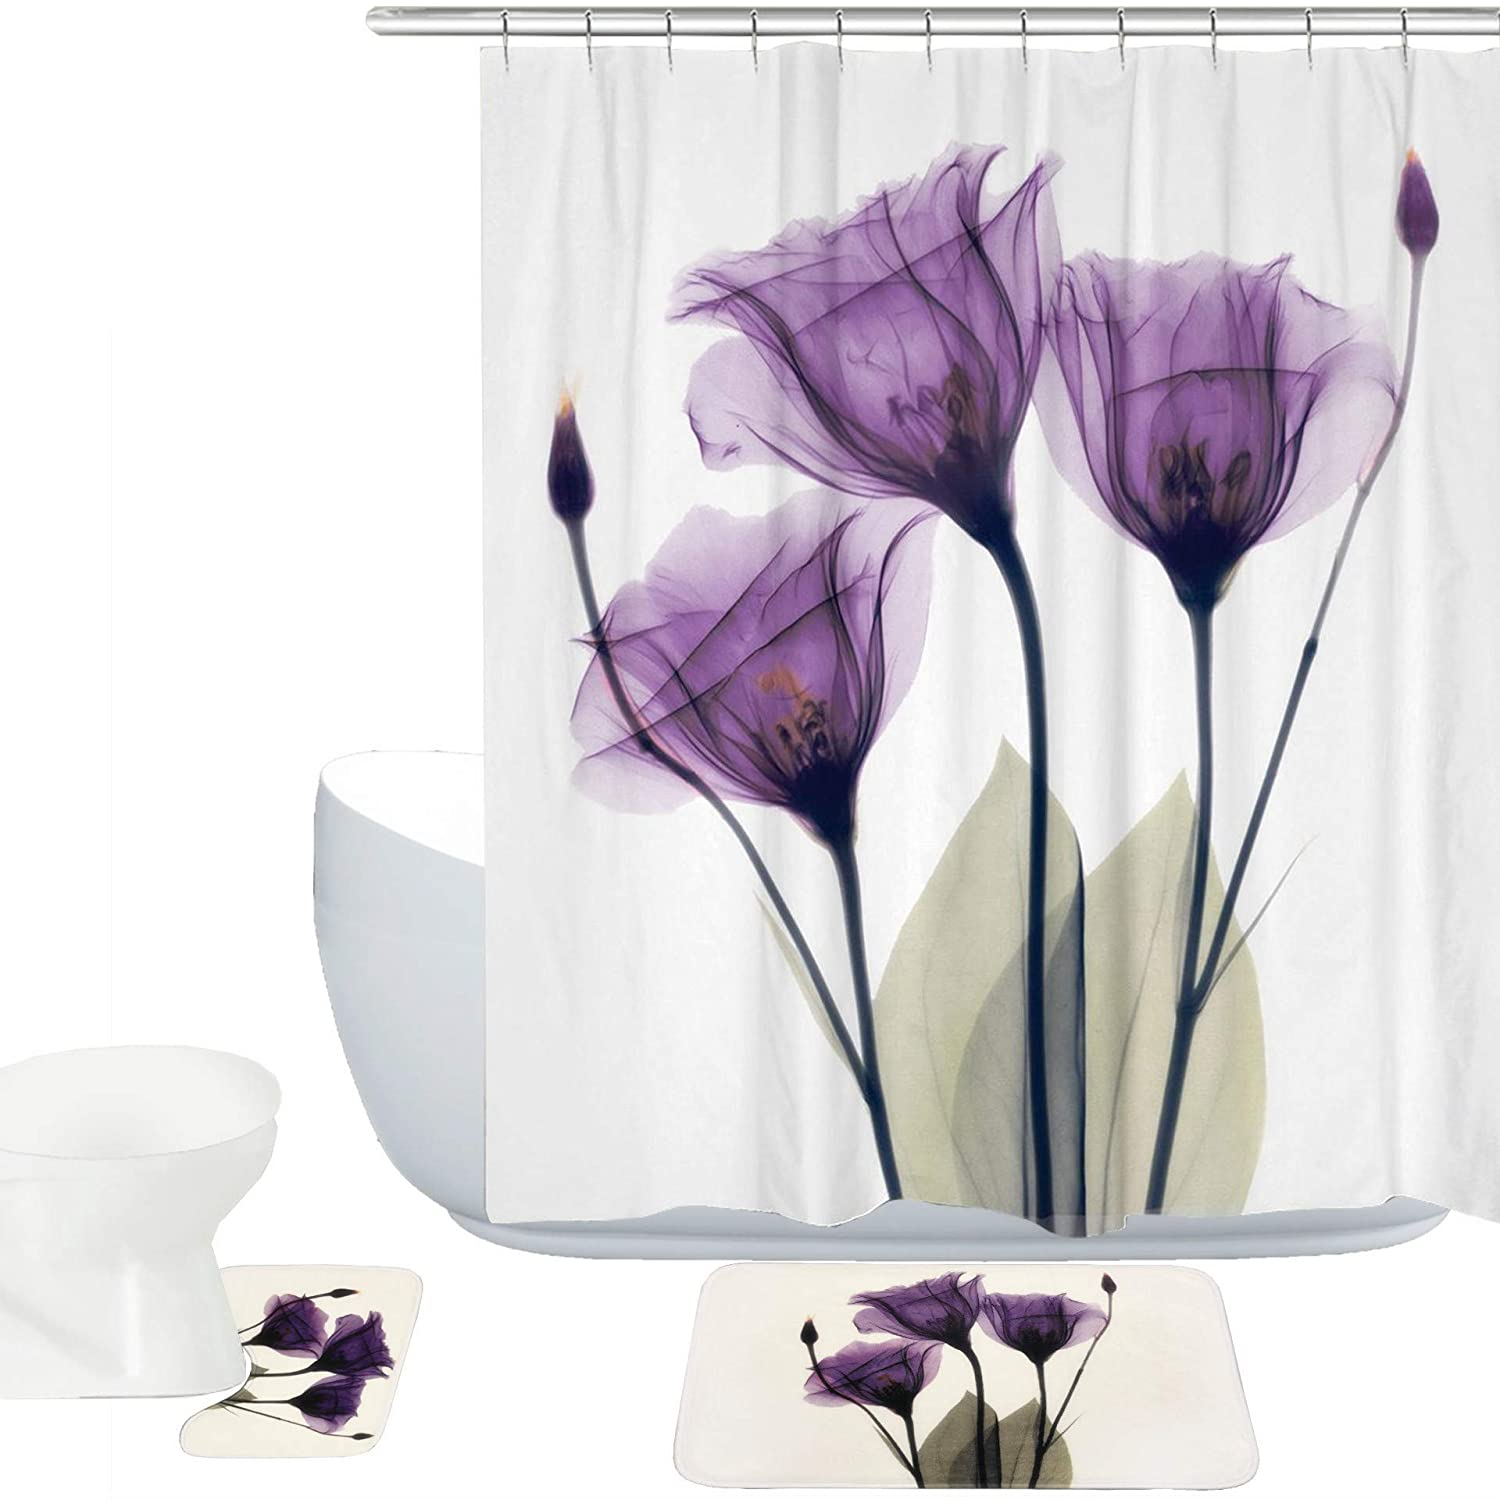 Amagical Purple Lotus Decor 15 Piece Bath Mat Set Shower Curtain Set Lotus Flower Pattern Decorative Design Bathroom Mat + Contour Mat + Shower Curtain + Hooks